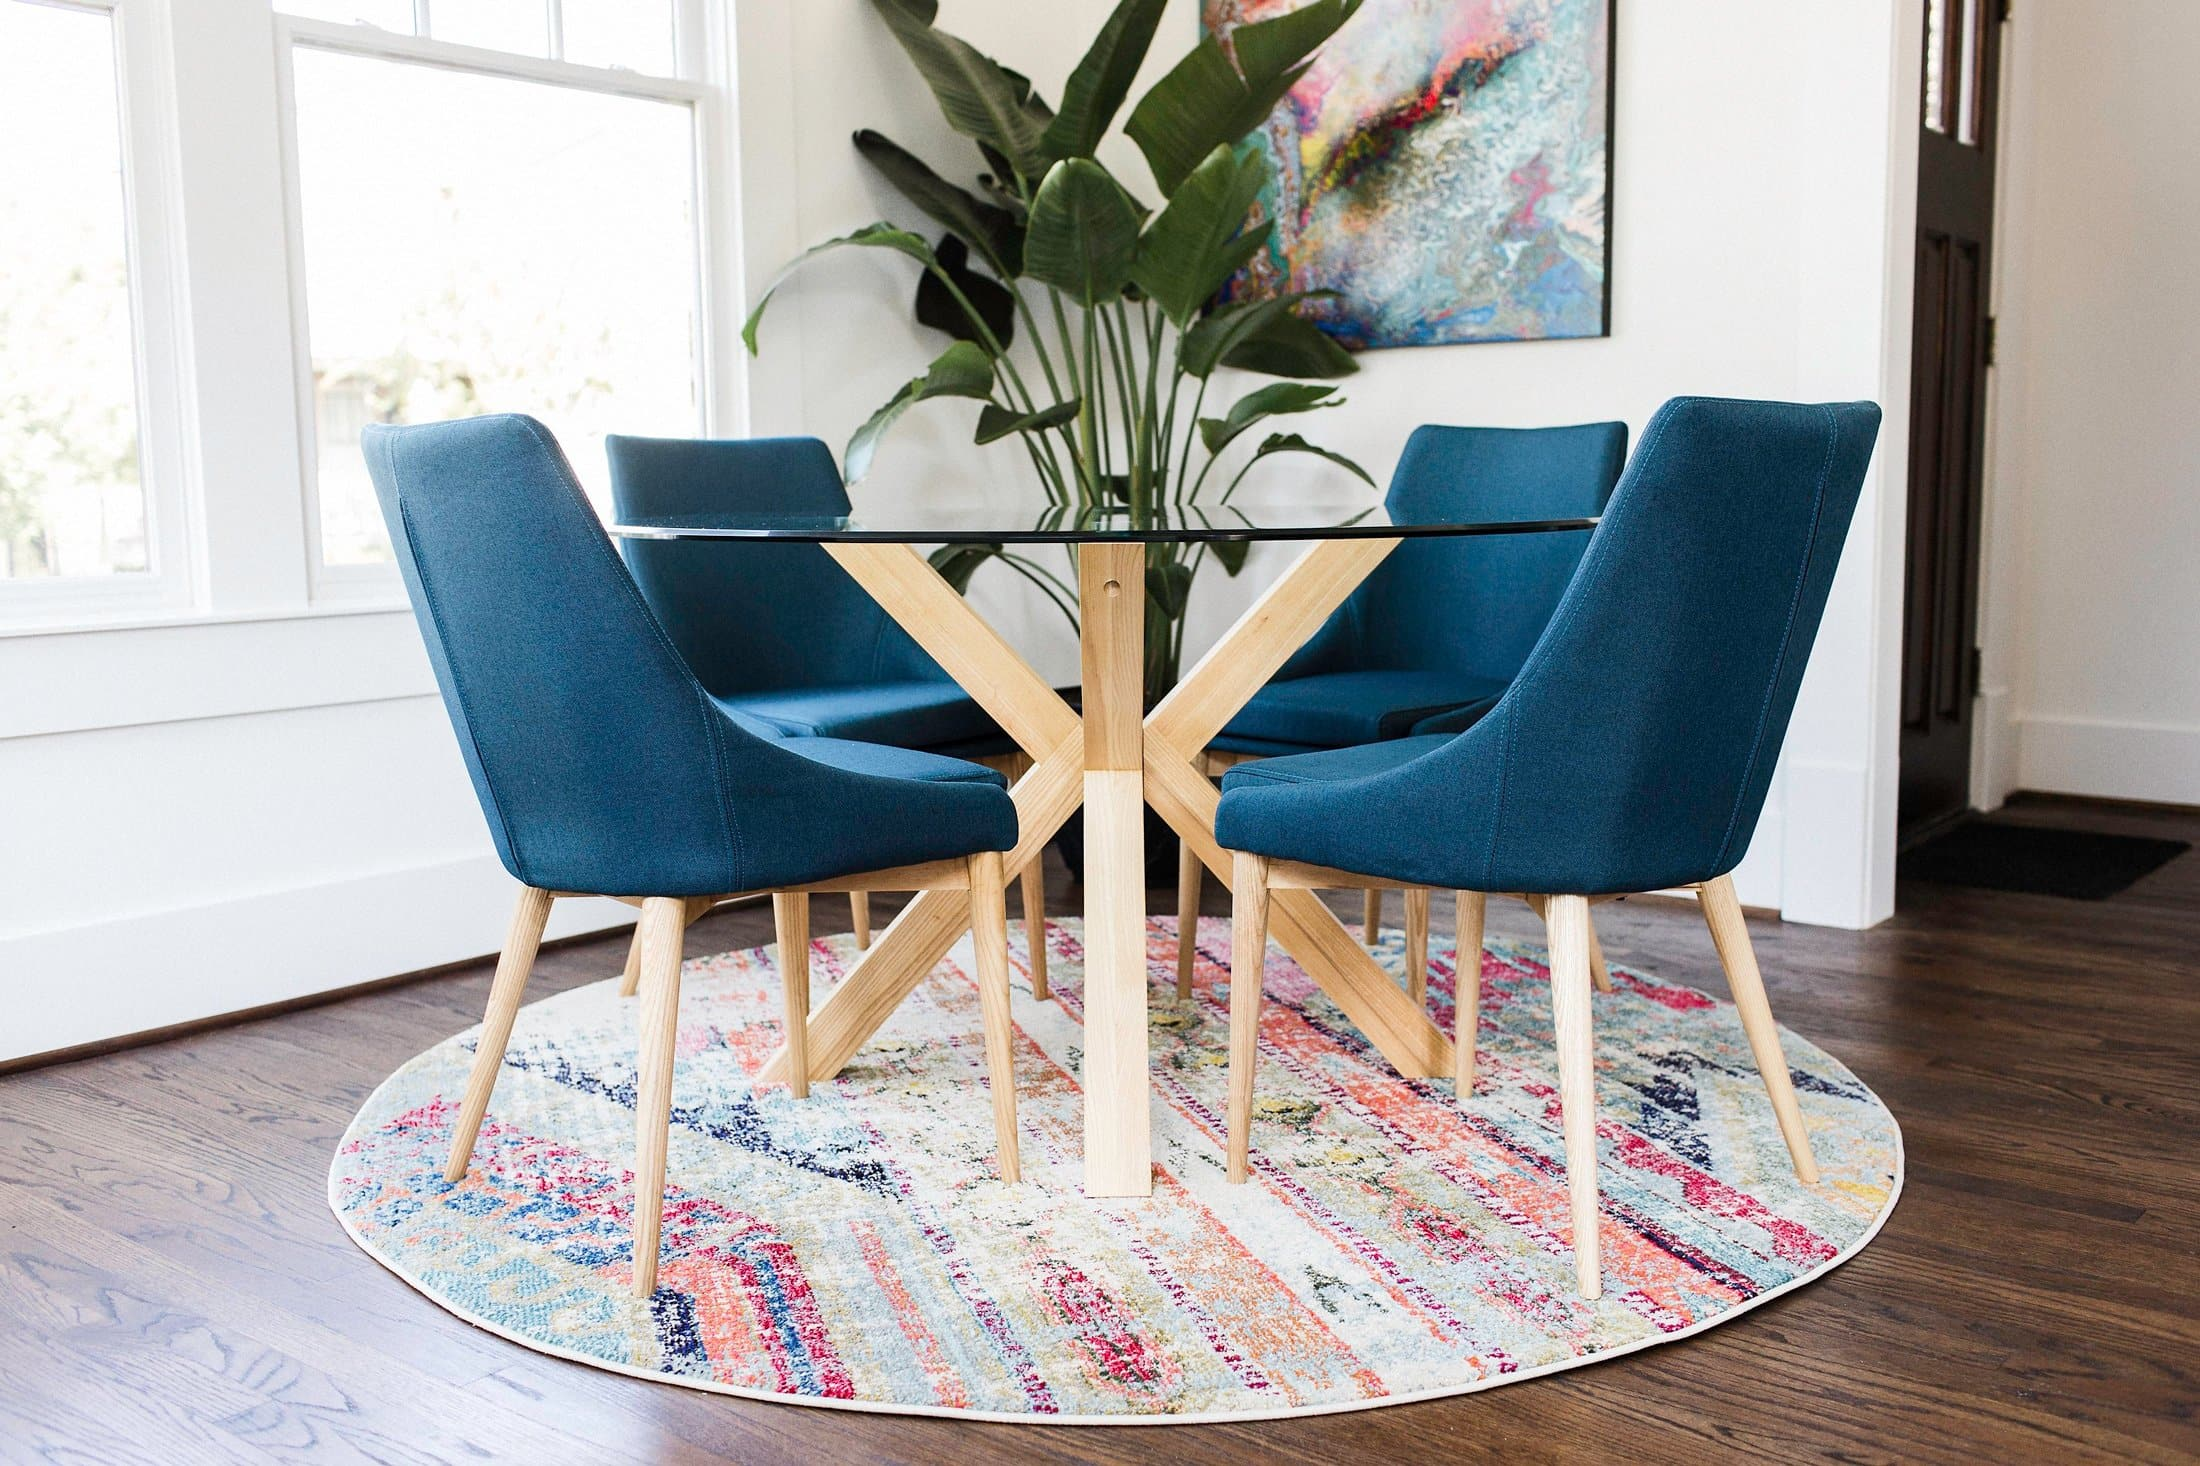 Jessica Modern Dining Chairs Set Of 2 Teal Blue Upholstered Fabric Edloe Finch Furniture Co